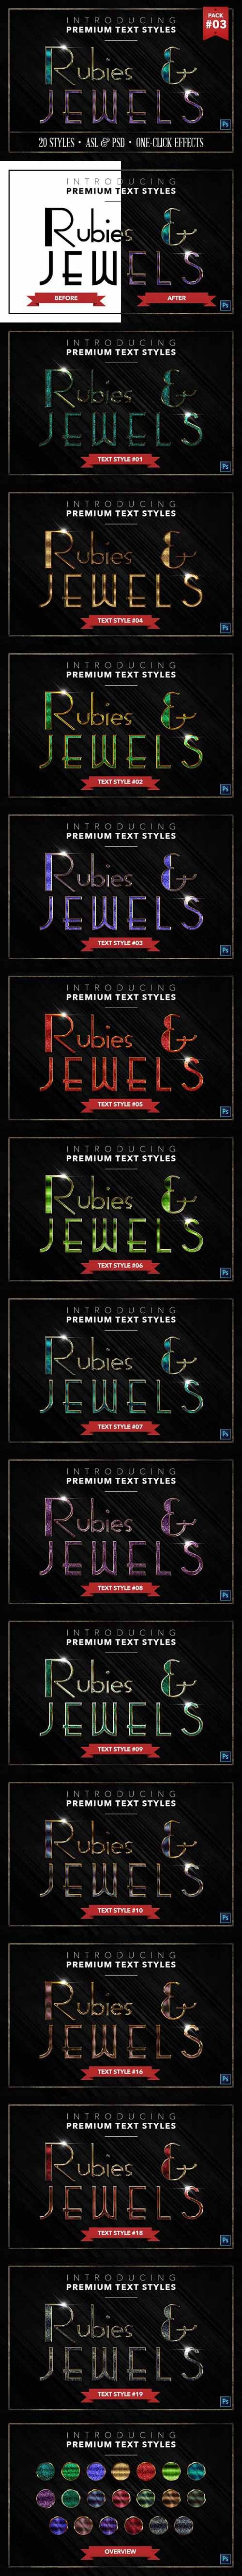 CM - Rubies & Jewels 3 - 20 Text Styles 1354440